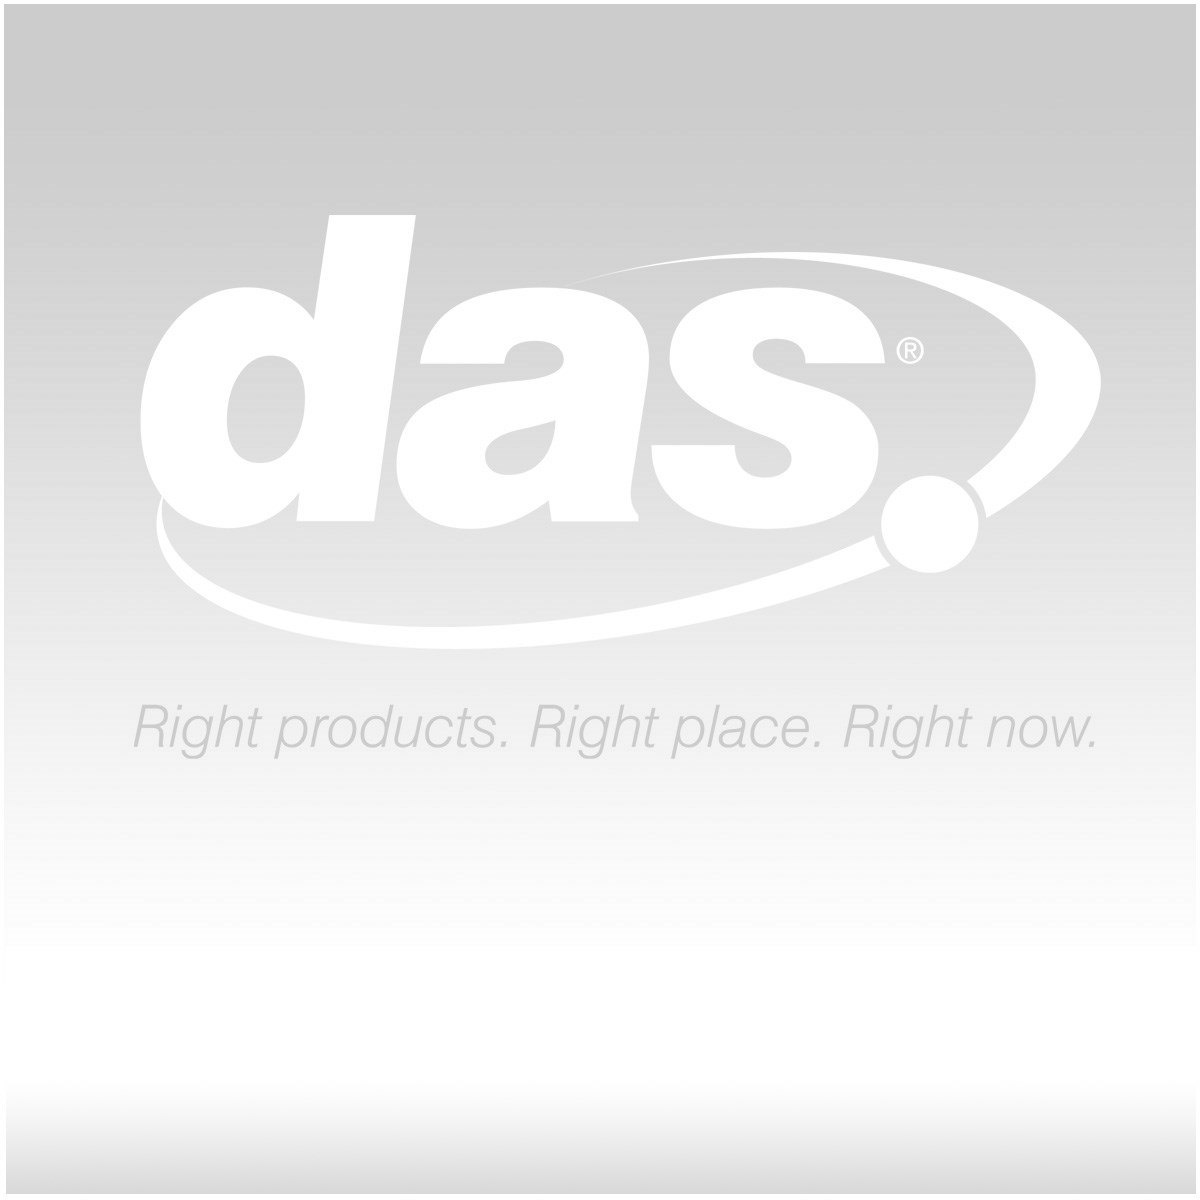 Truckload Carriers Association - TCA